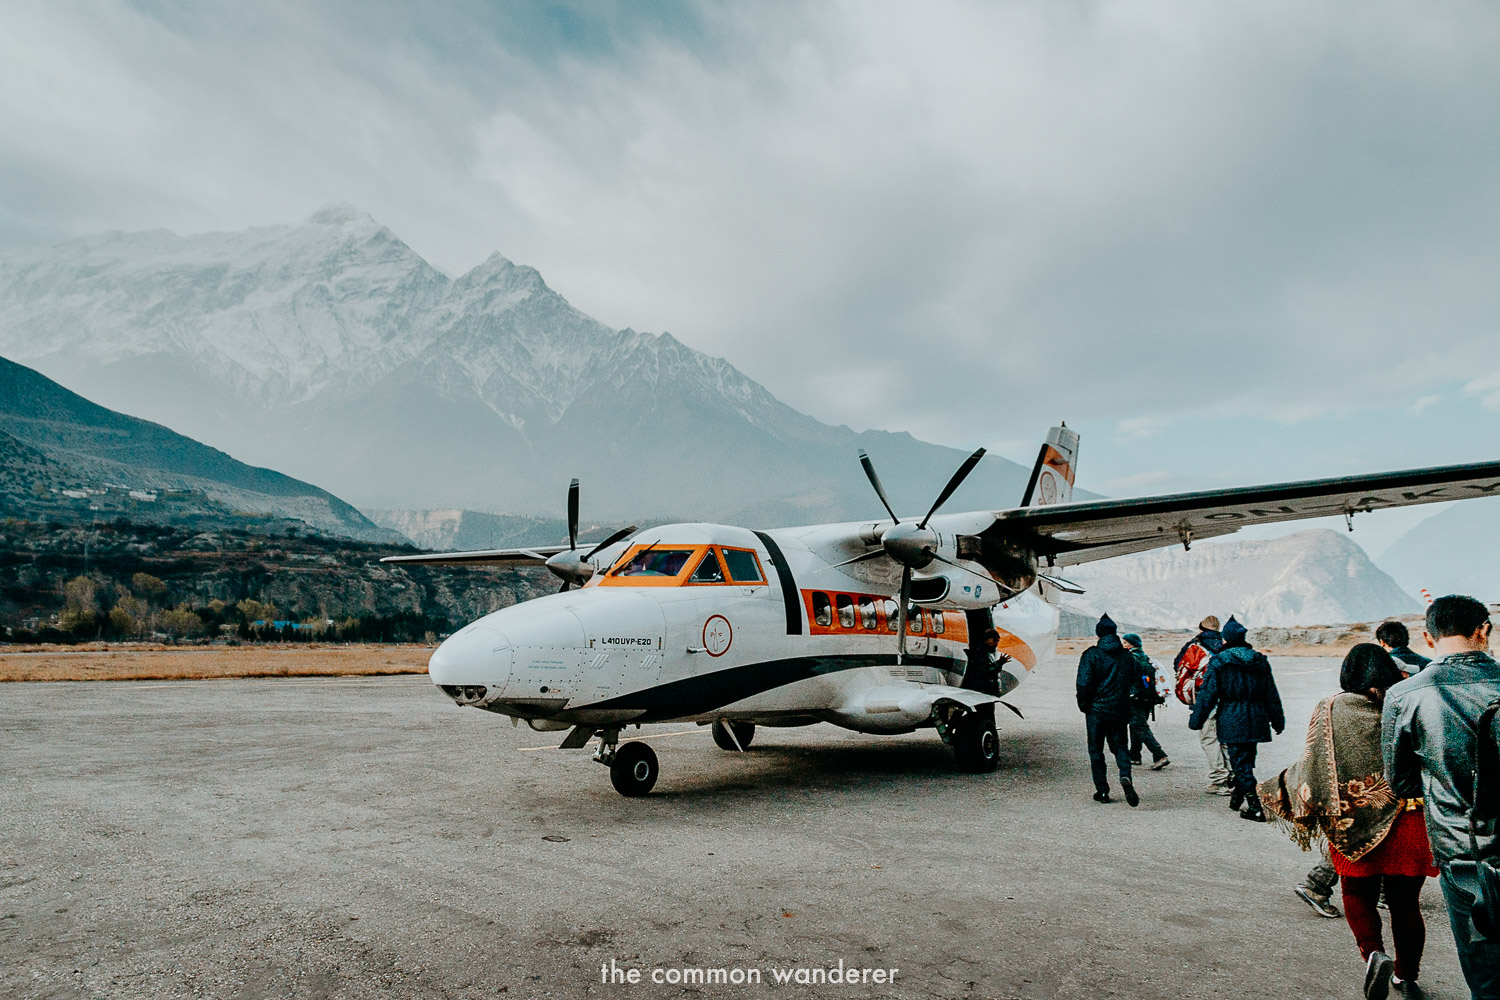 A aircraft prepares for passengers from Jomson to Pokhara - transport in Nepal